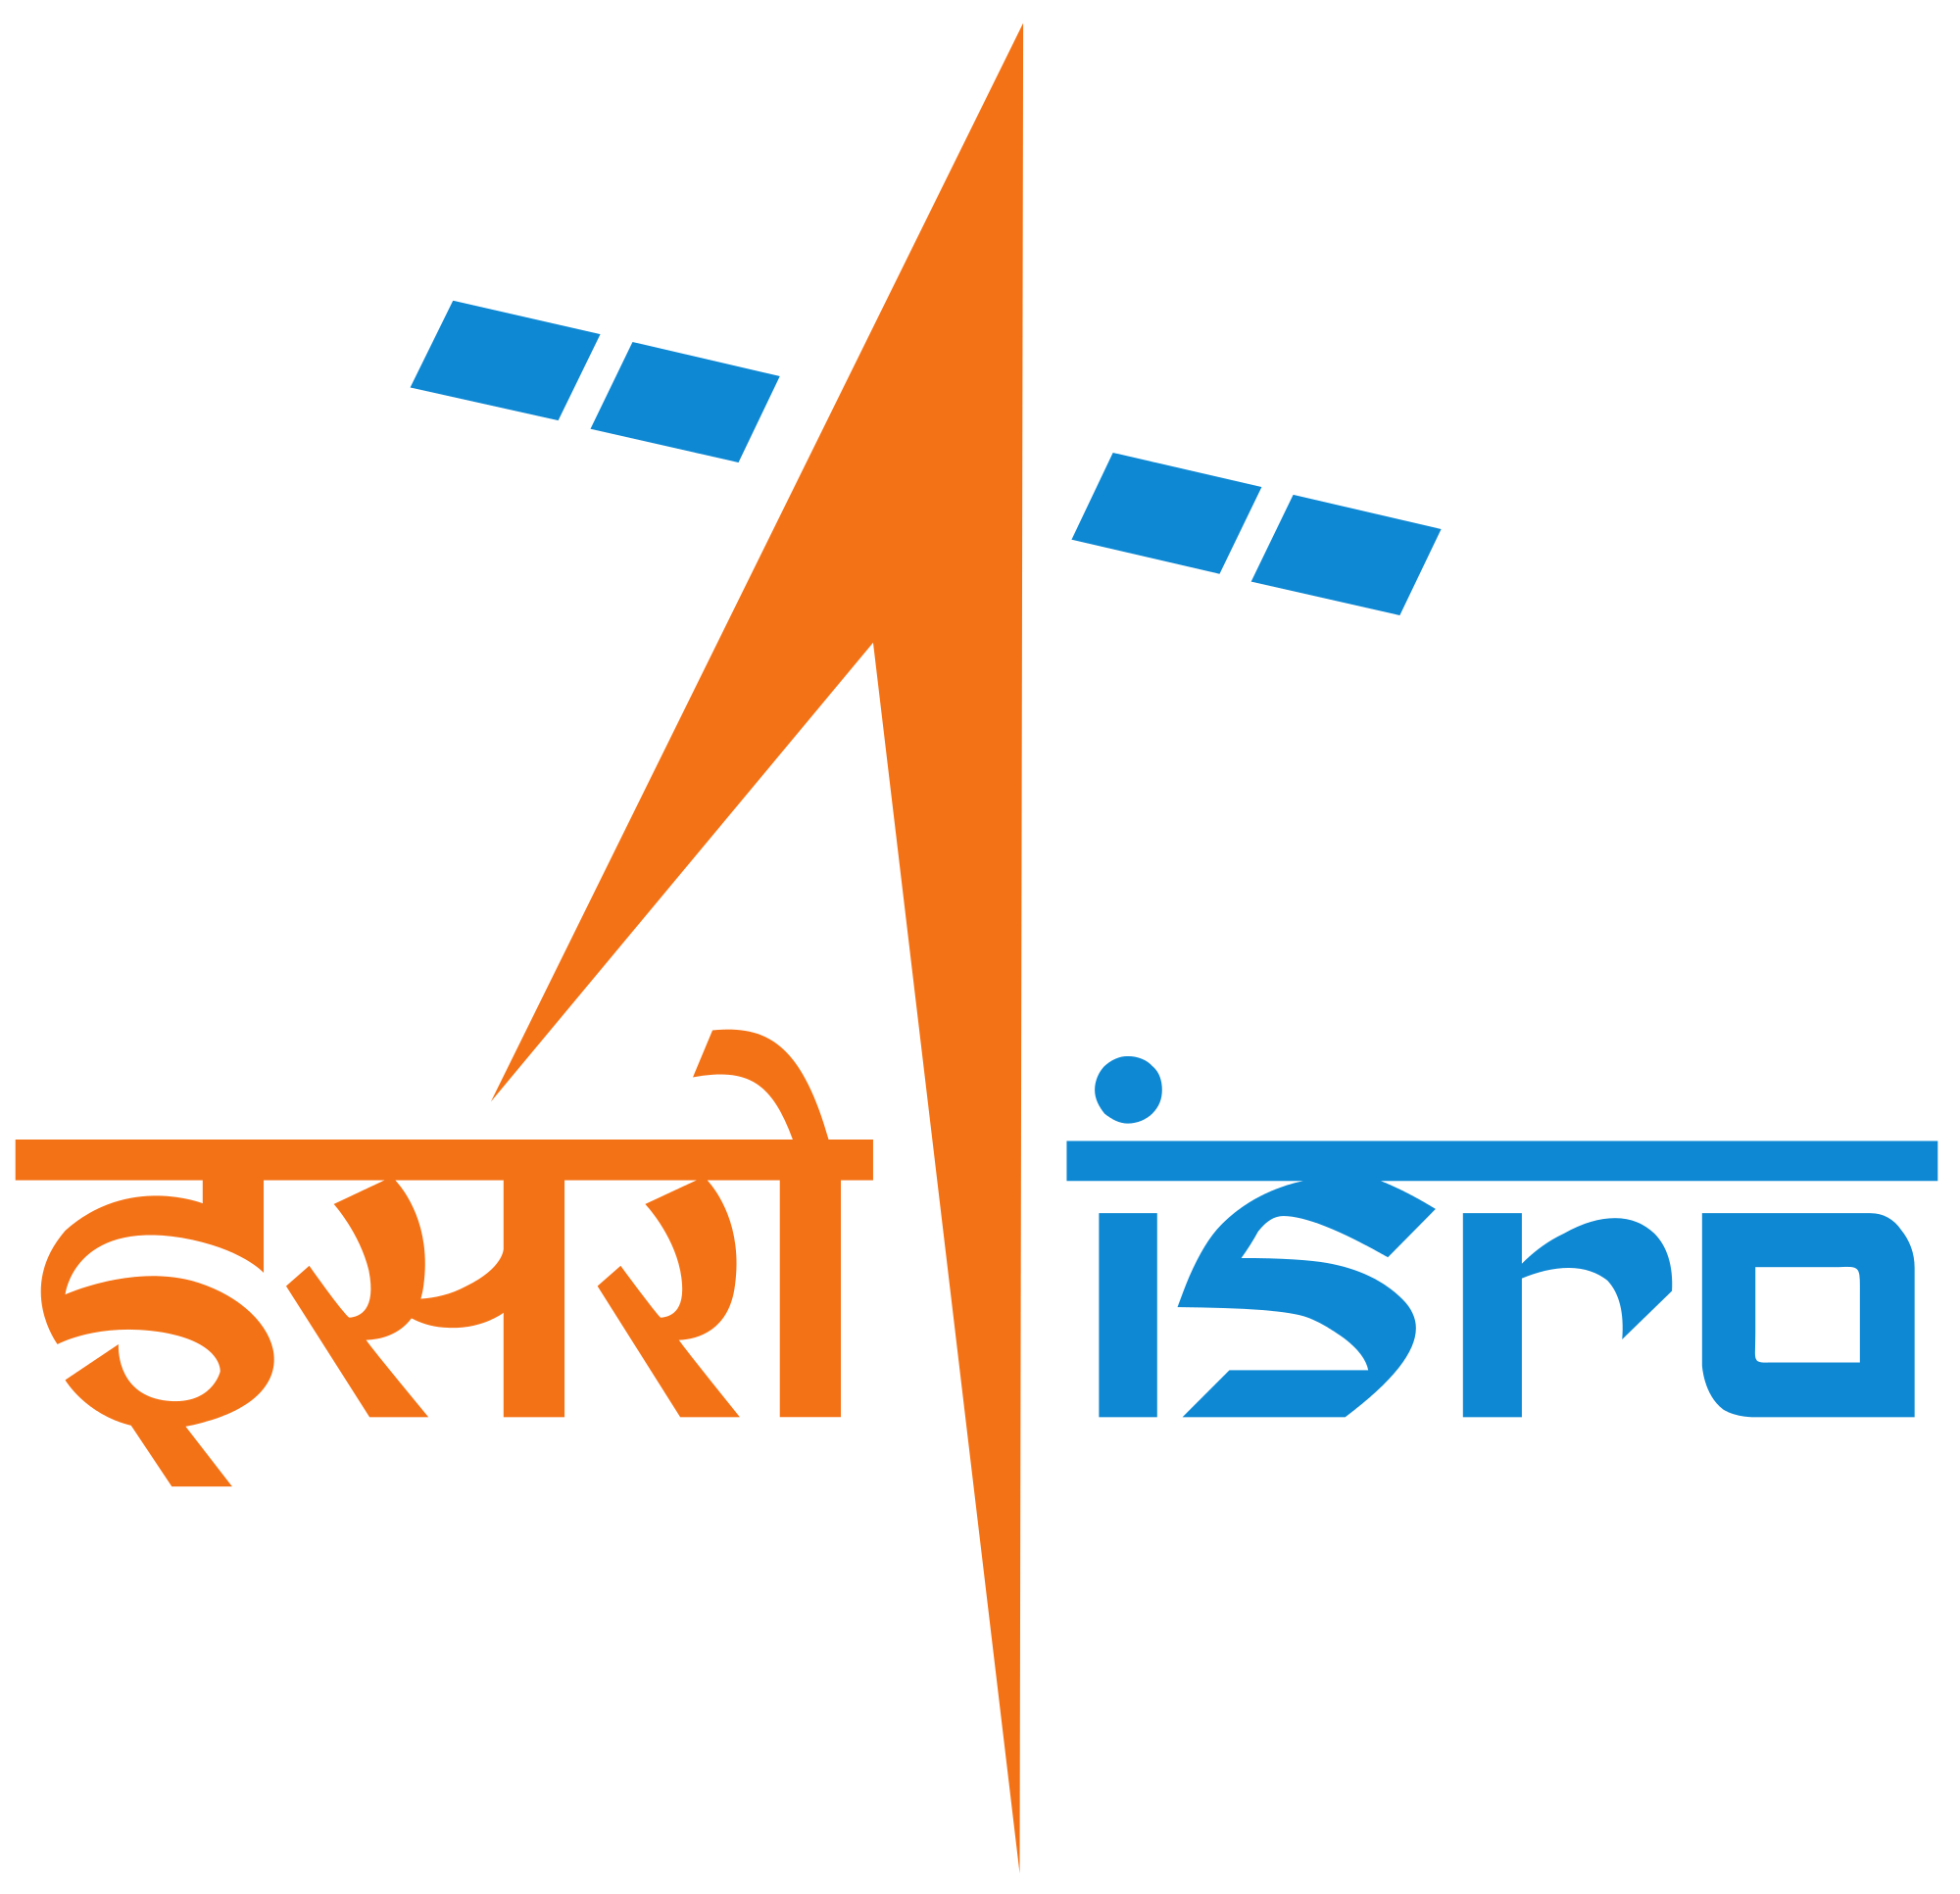 The Indian space agency, ISRO is developing Traveling Wave Tube Amplifier (TWTA) for space borne payloads. TWTA is commonly used in satellite communication links, earth observation payloads, scientific missions or probes and inter-spacecraft communications links. It consists of Electronic Power Conditioner (EPC) and Traveling Wave Tube (TWT).